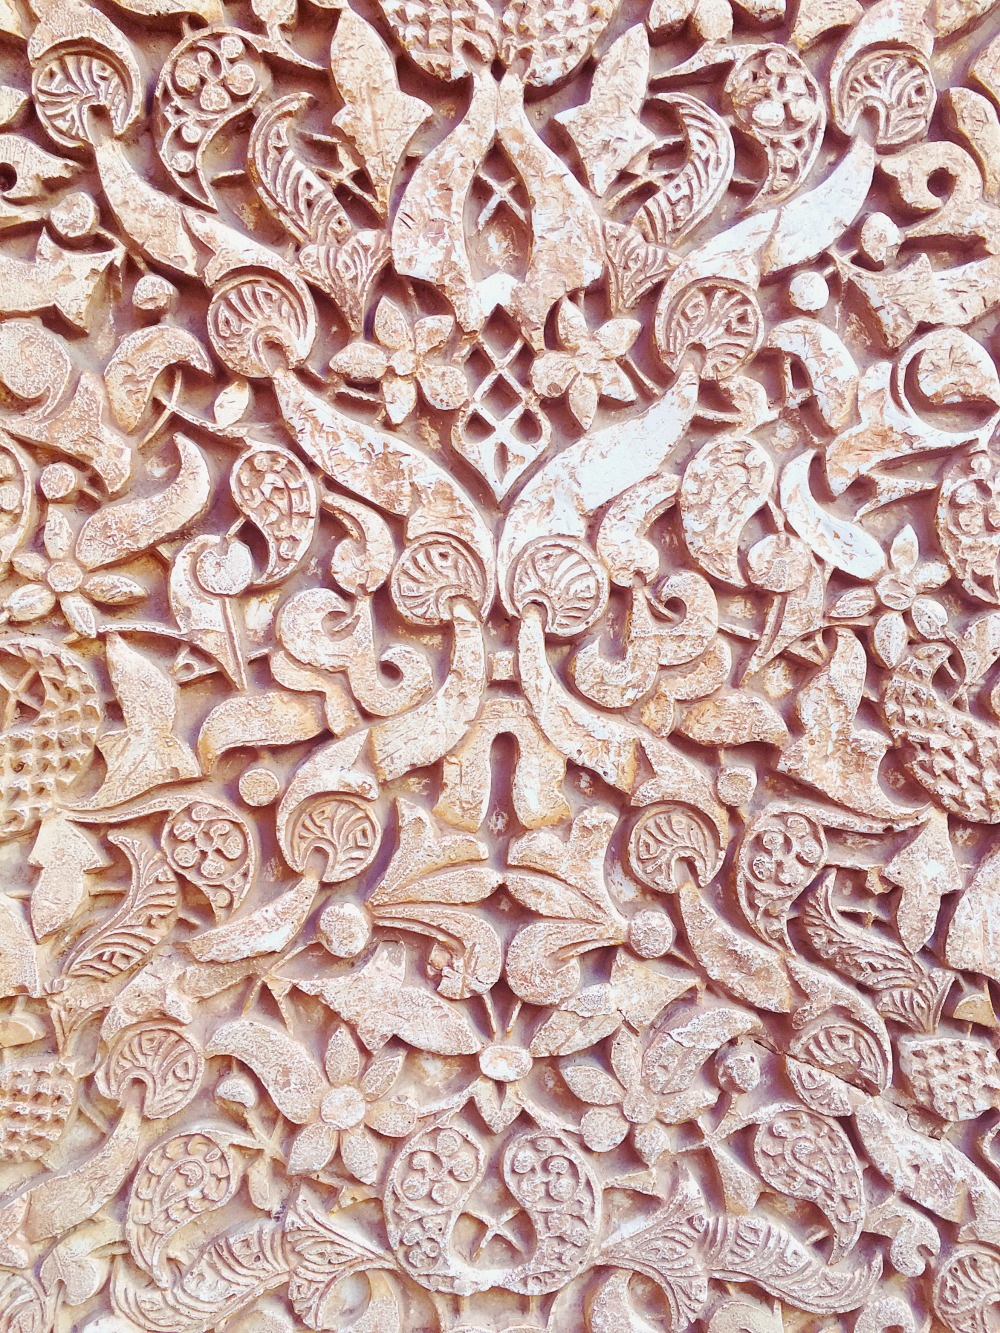 Biomorphic Patterns Alhambra Image